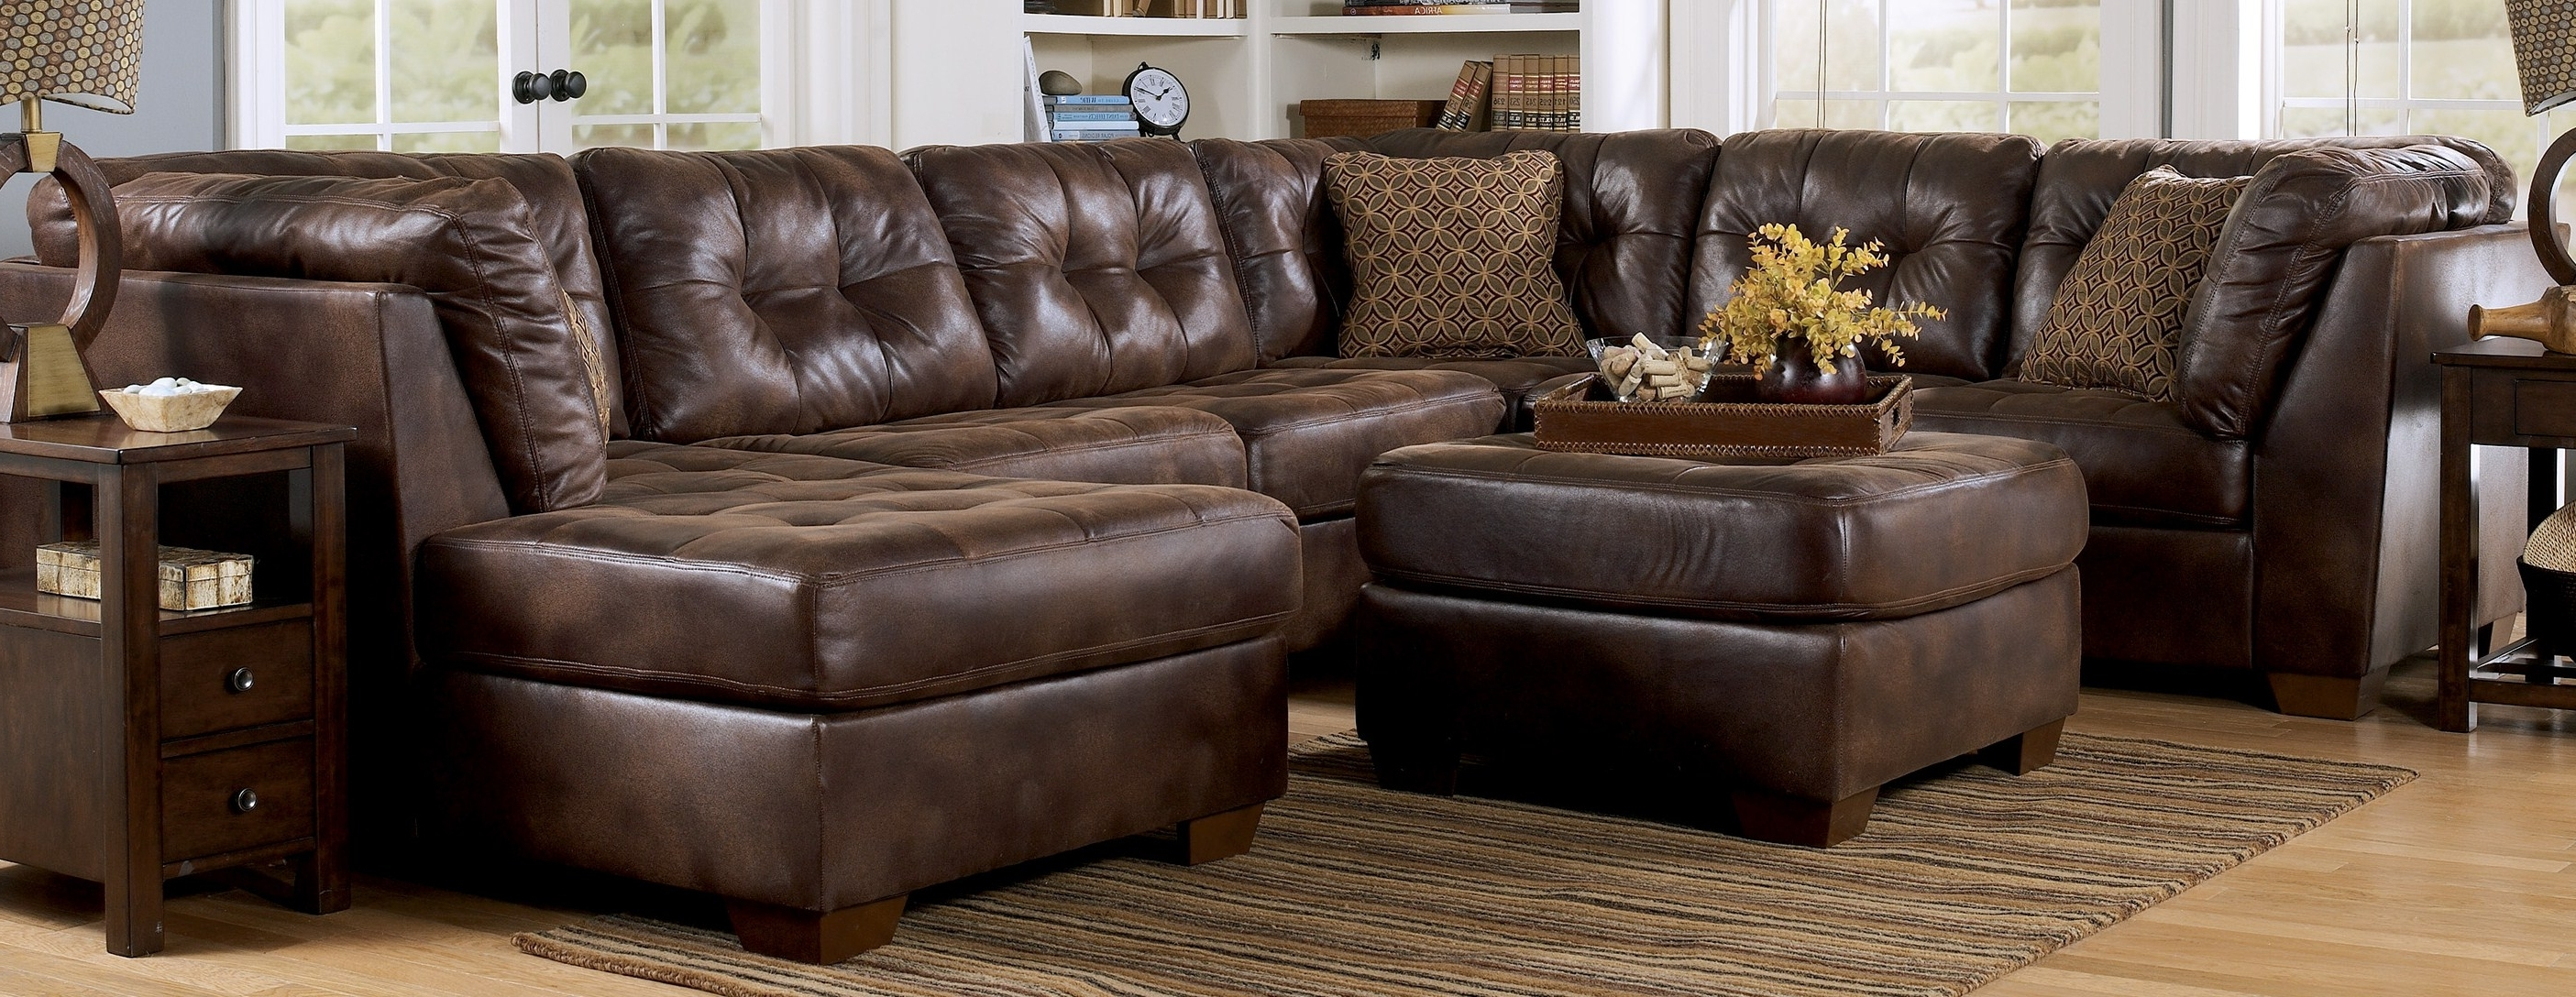 Most Up To Date Leather Sectional Sofas With Ottoman Pertaining To My Parents Have This Couch, And Now We're Saving For It! Its Sooo (View 10 of 15)